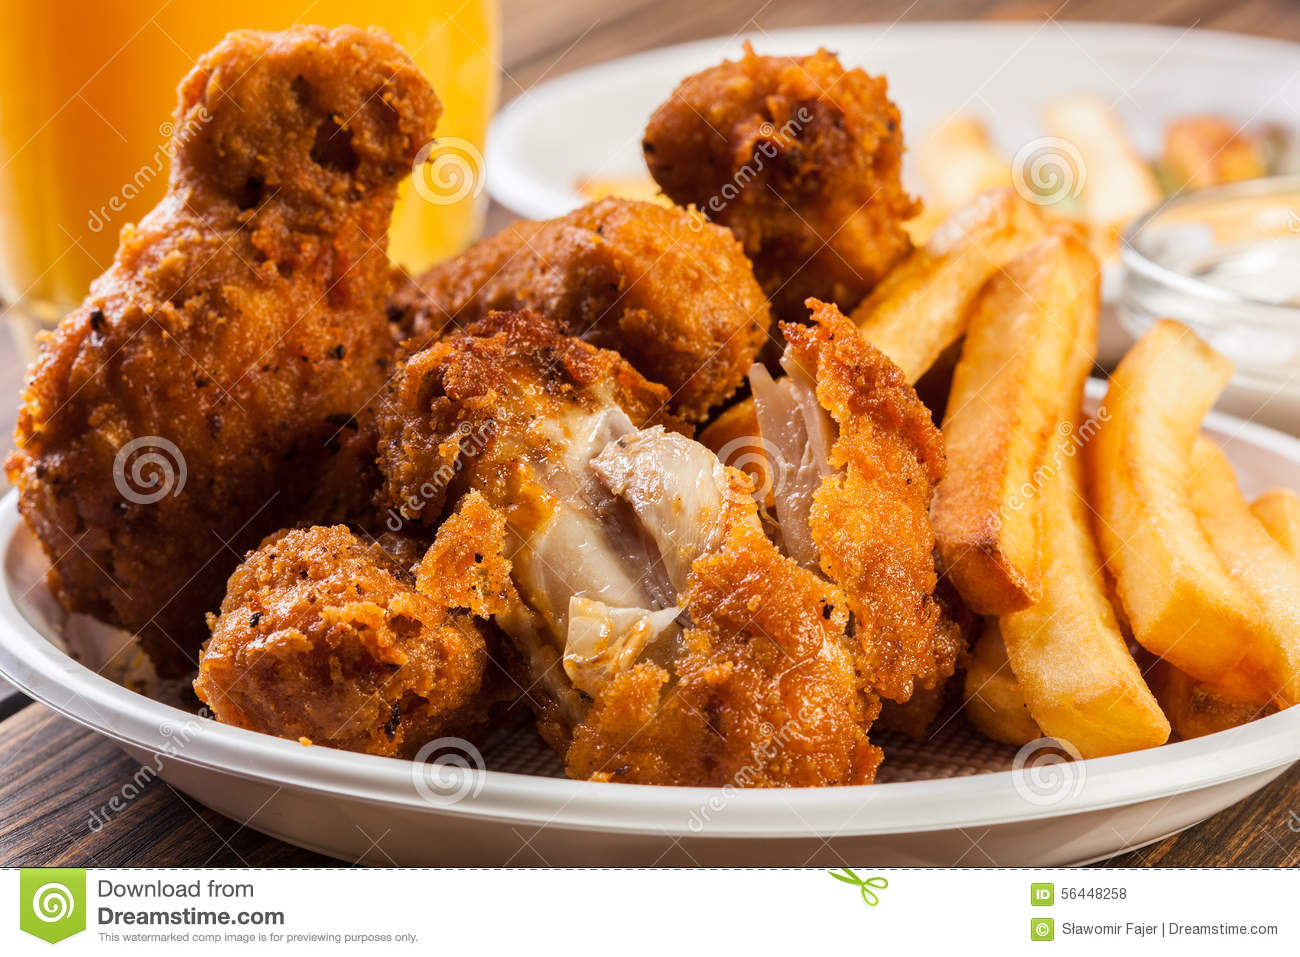 image Chicken wings and chips